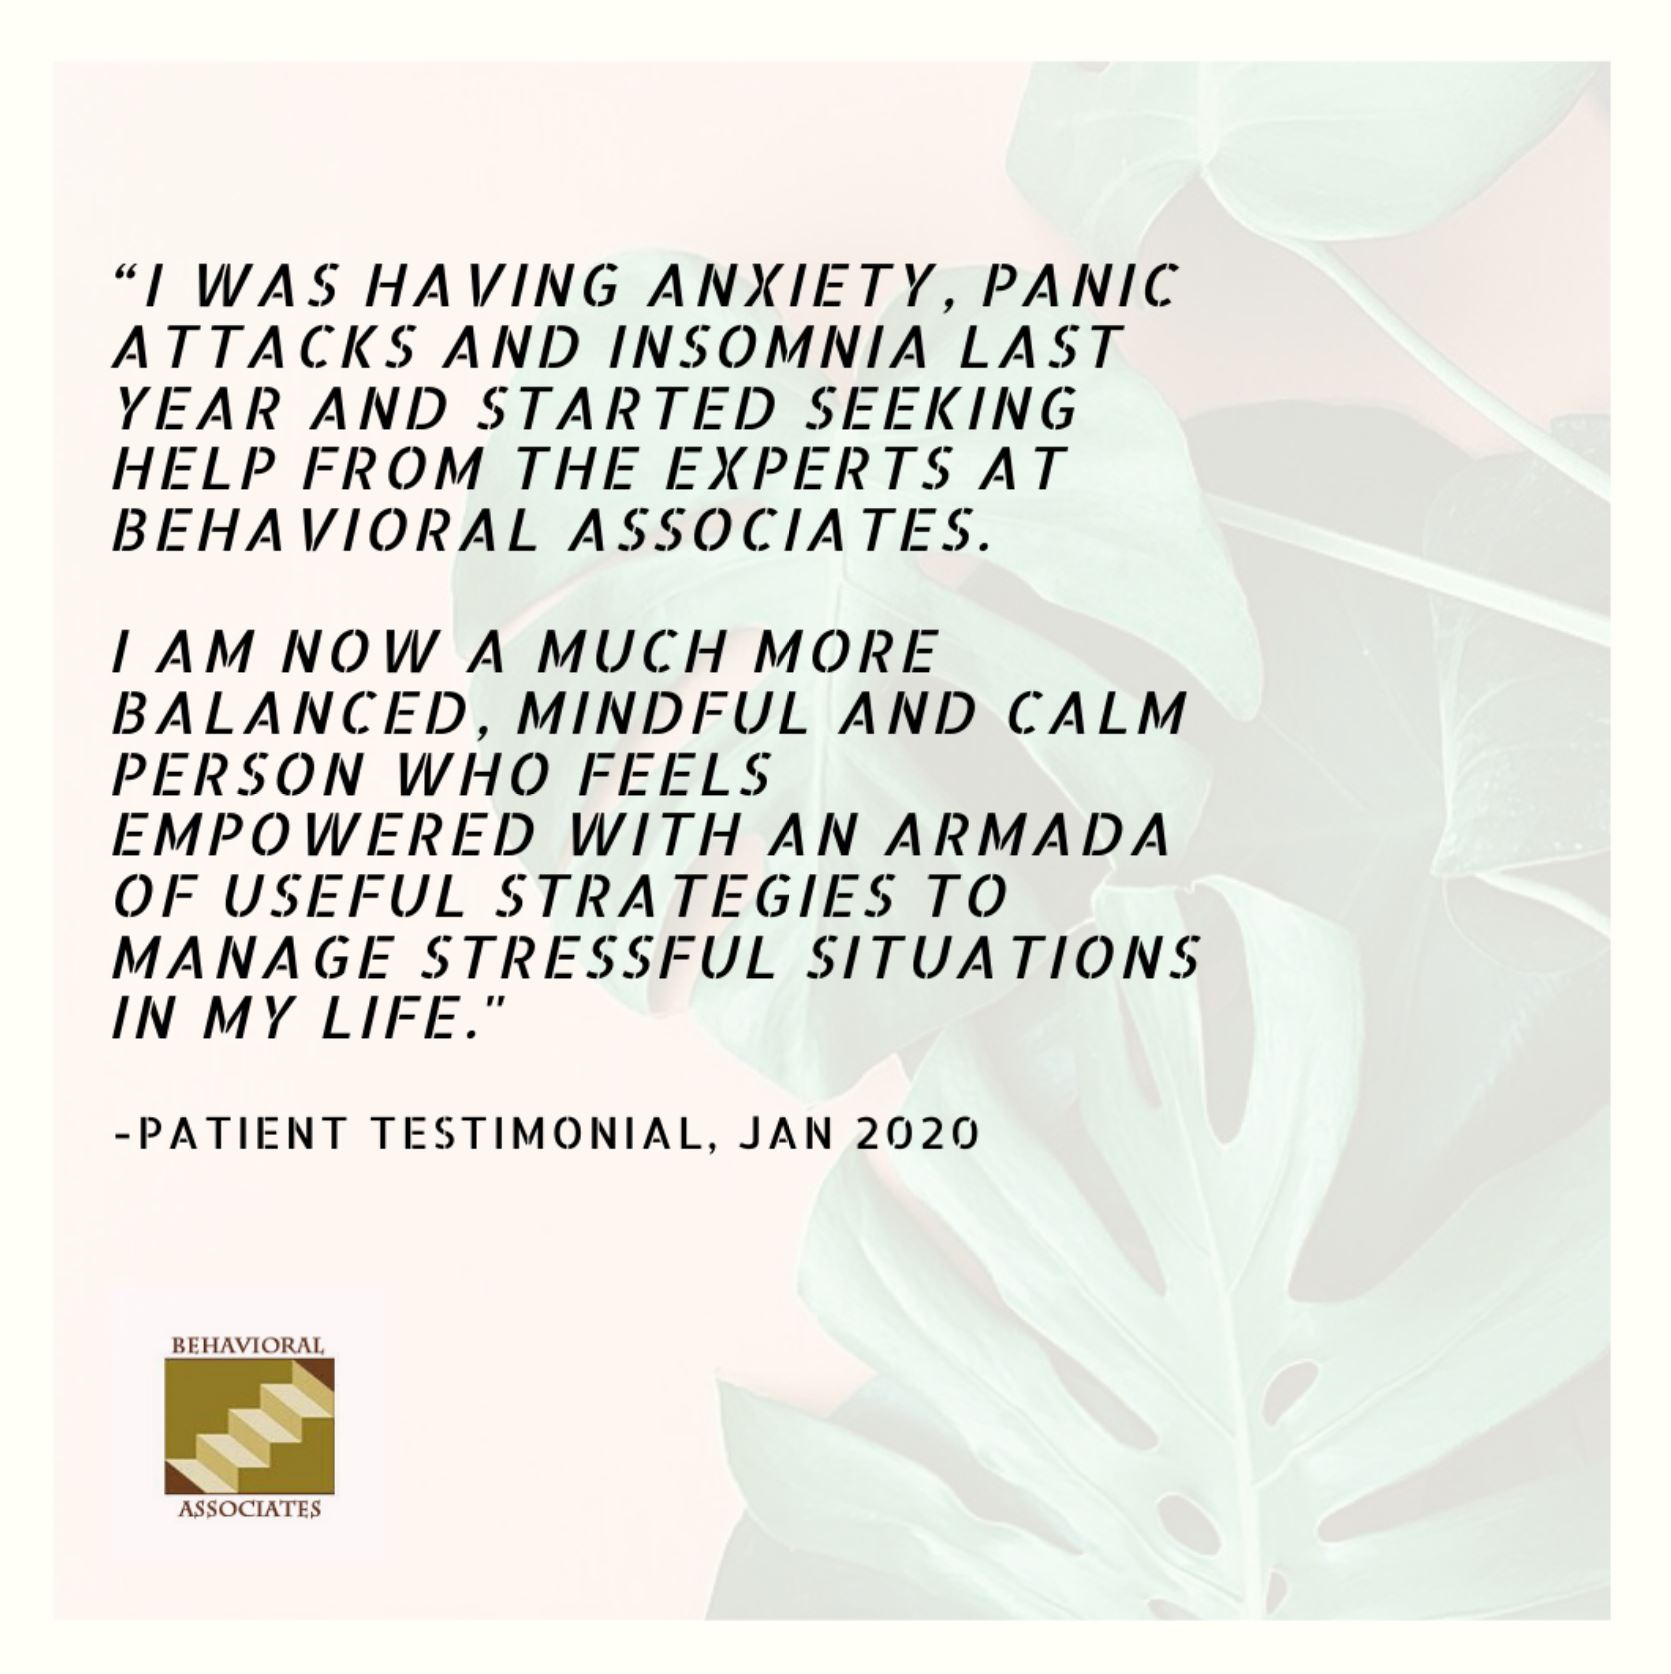 Patient Testimonial from Behavioral Associates